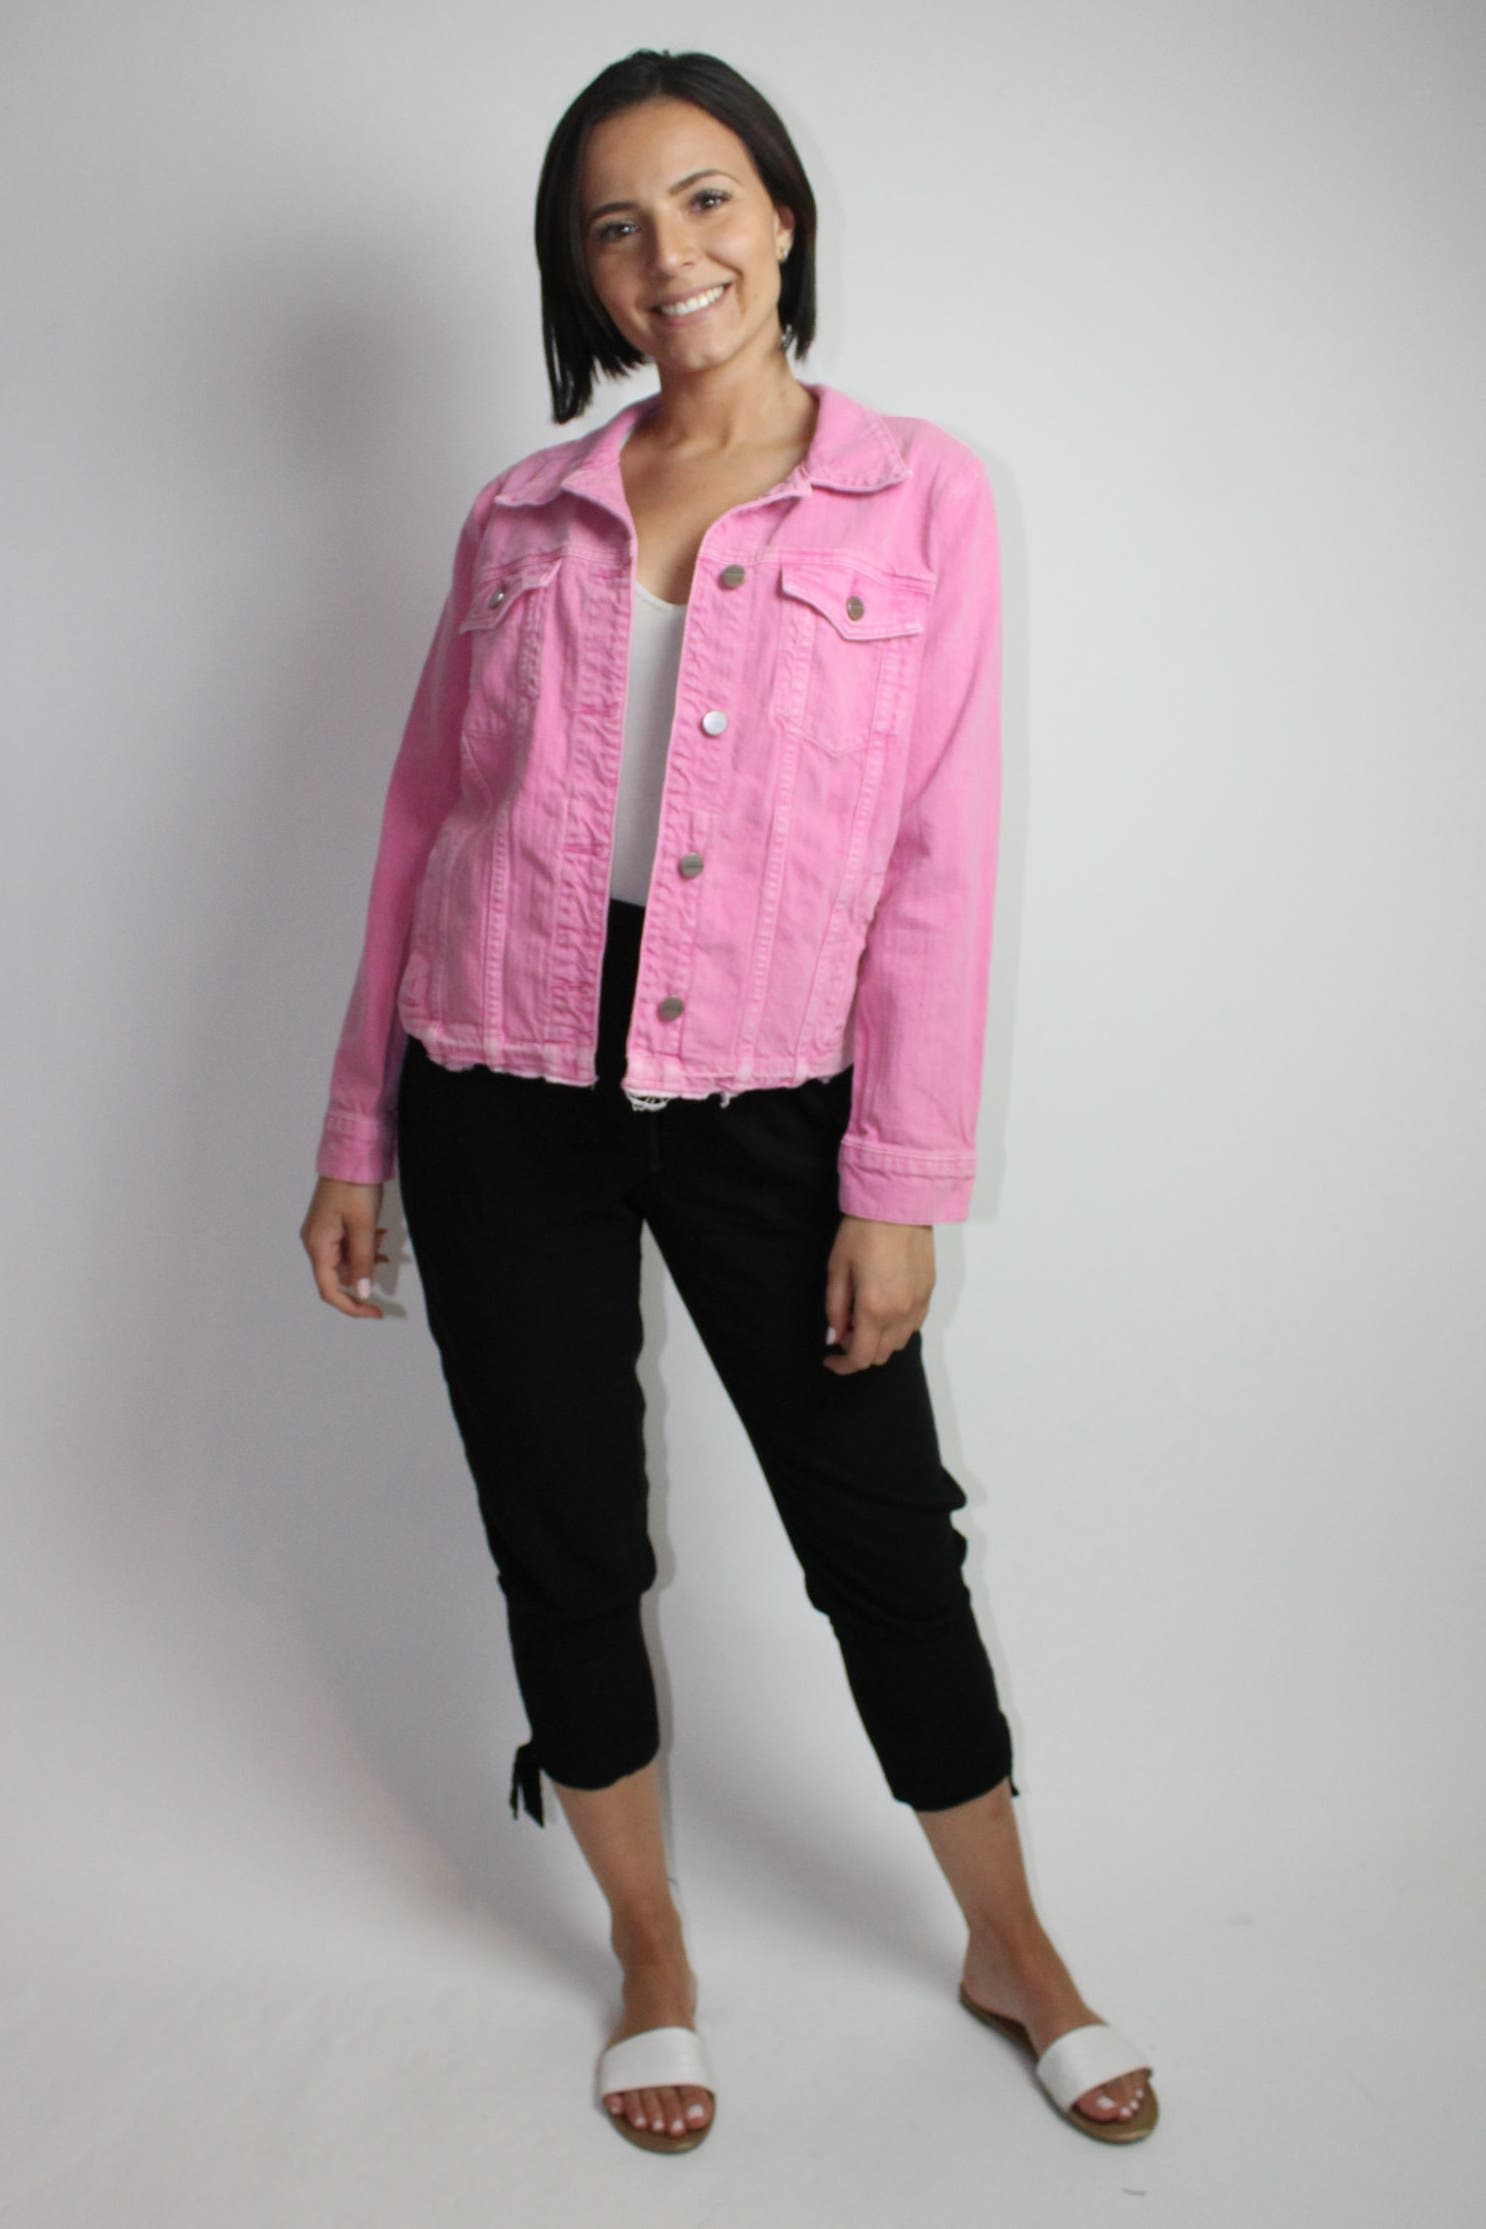 Wild Cherry Denim Jacket by Sanctuary for $30 | Rent the Runway